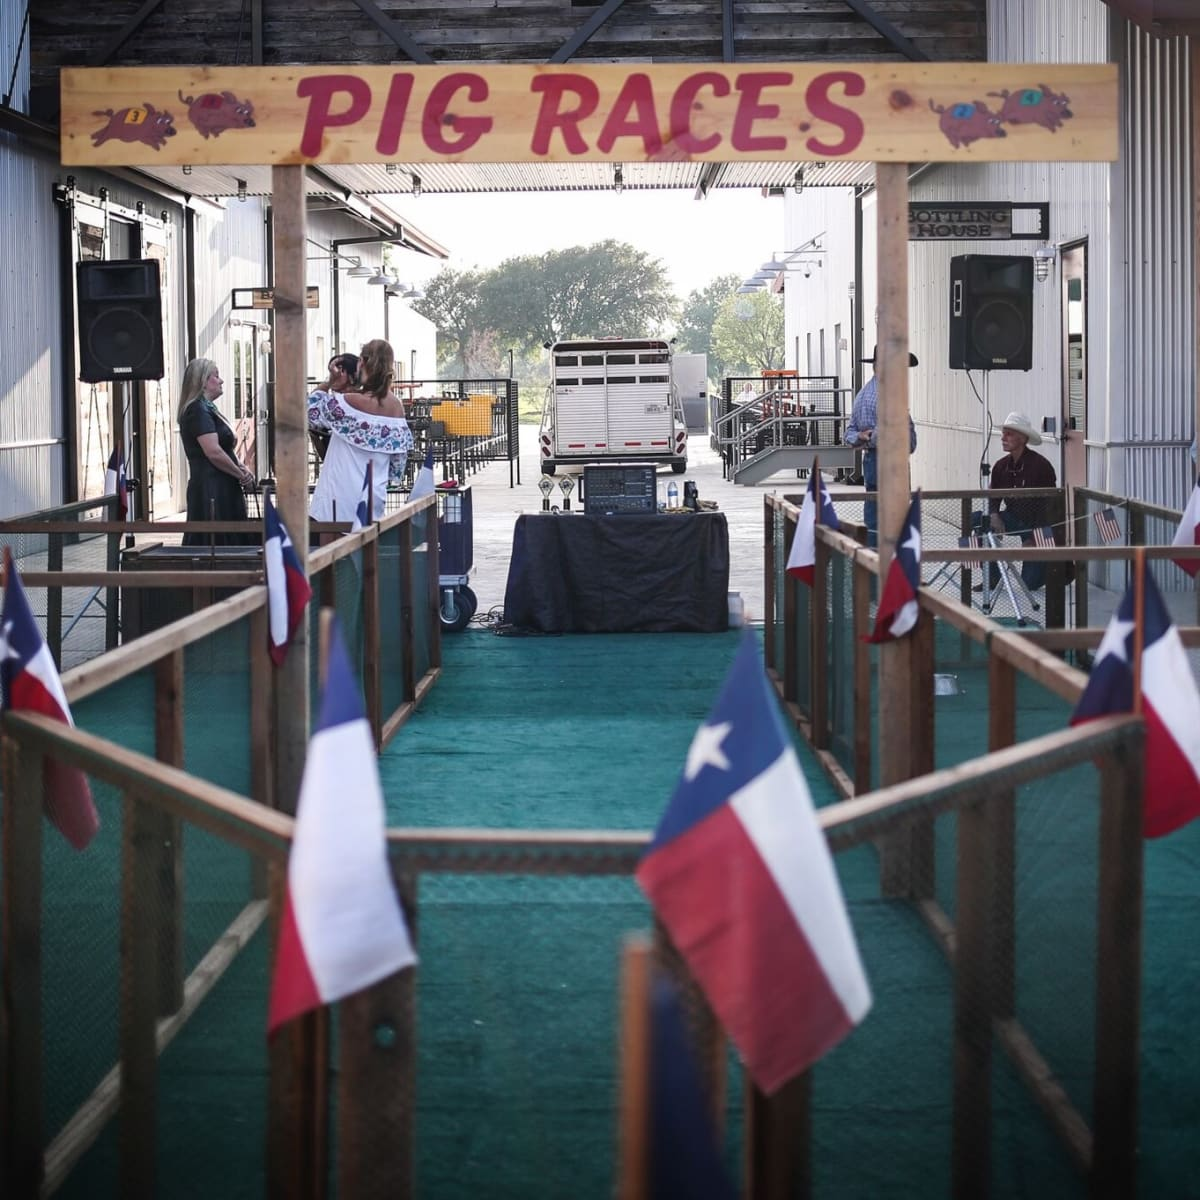 Pig Races, Cowtown Ball